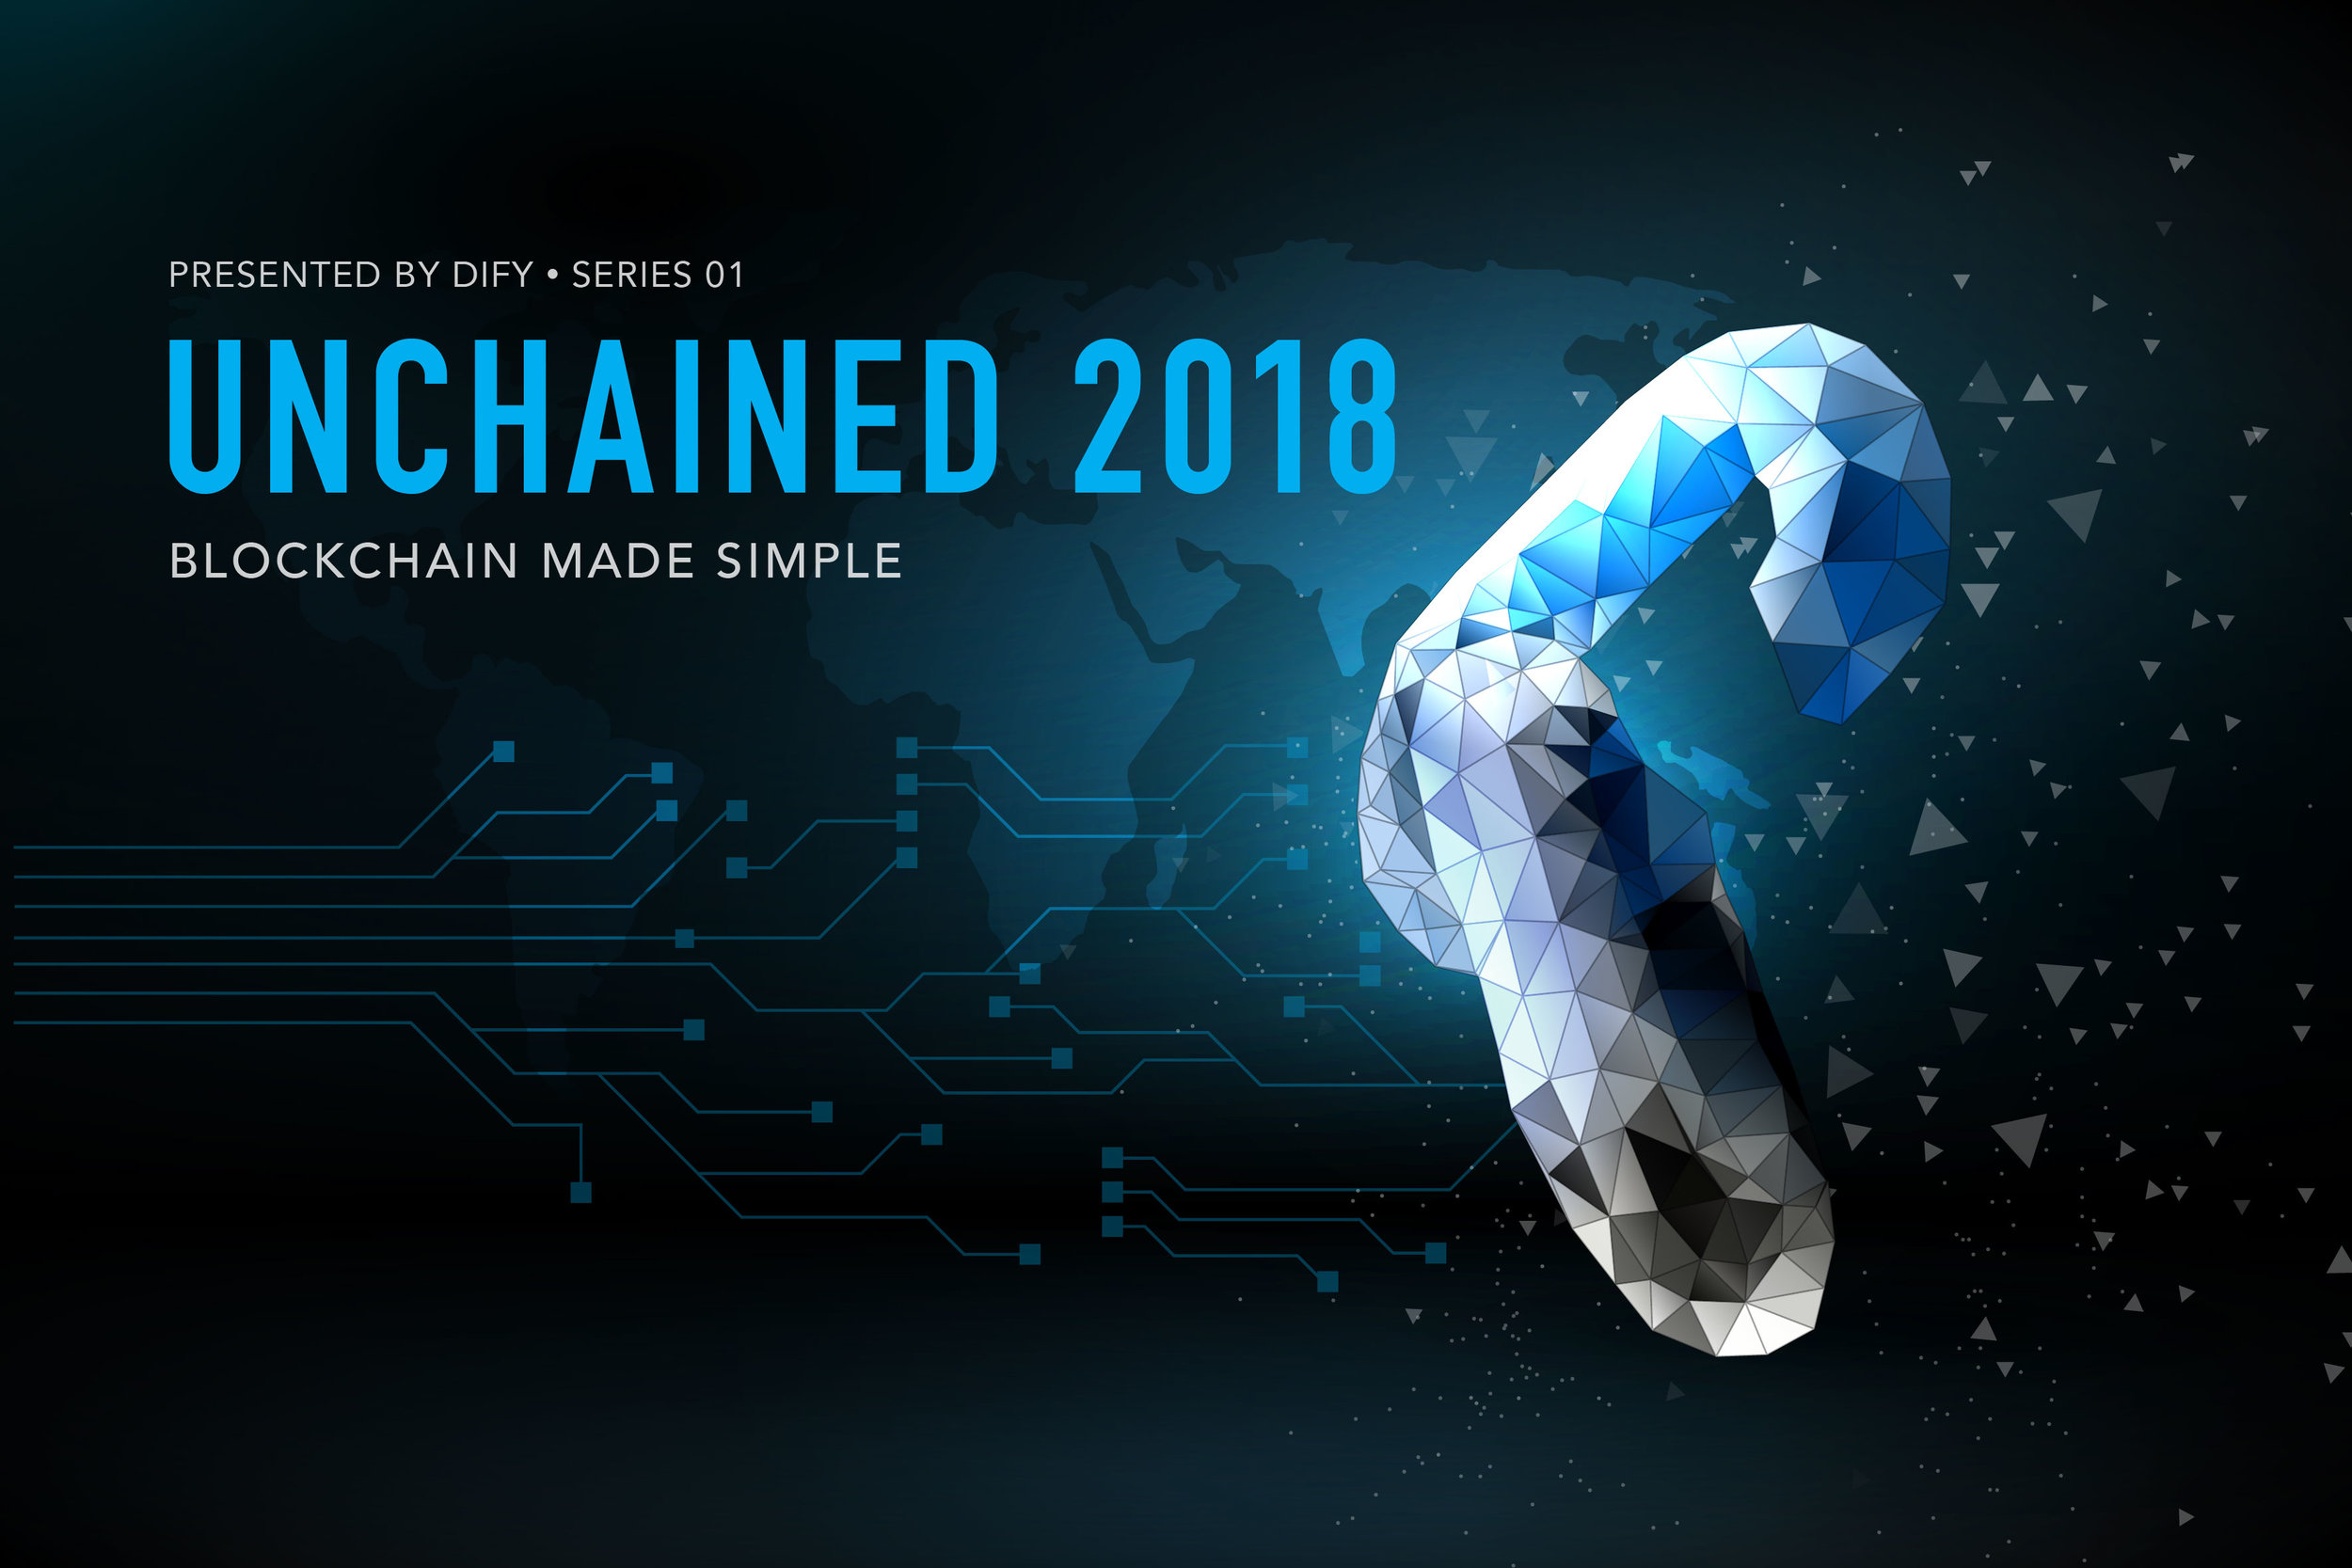 Unchained2018.jpg